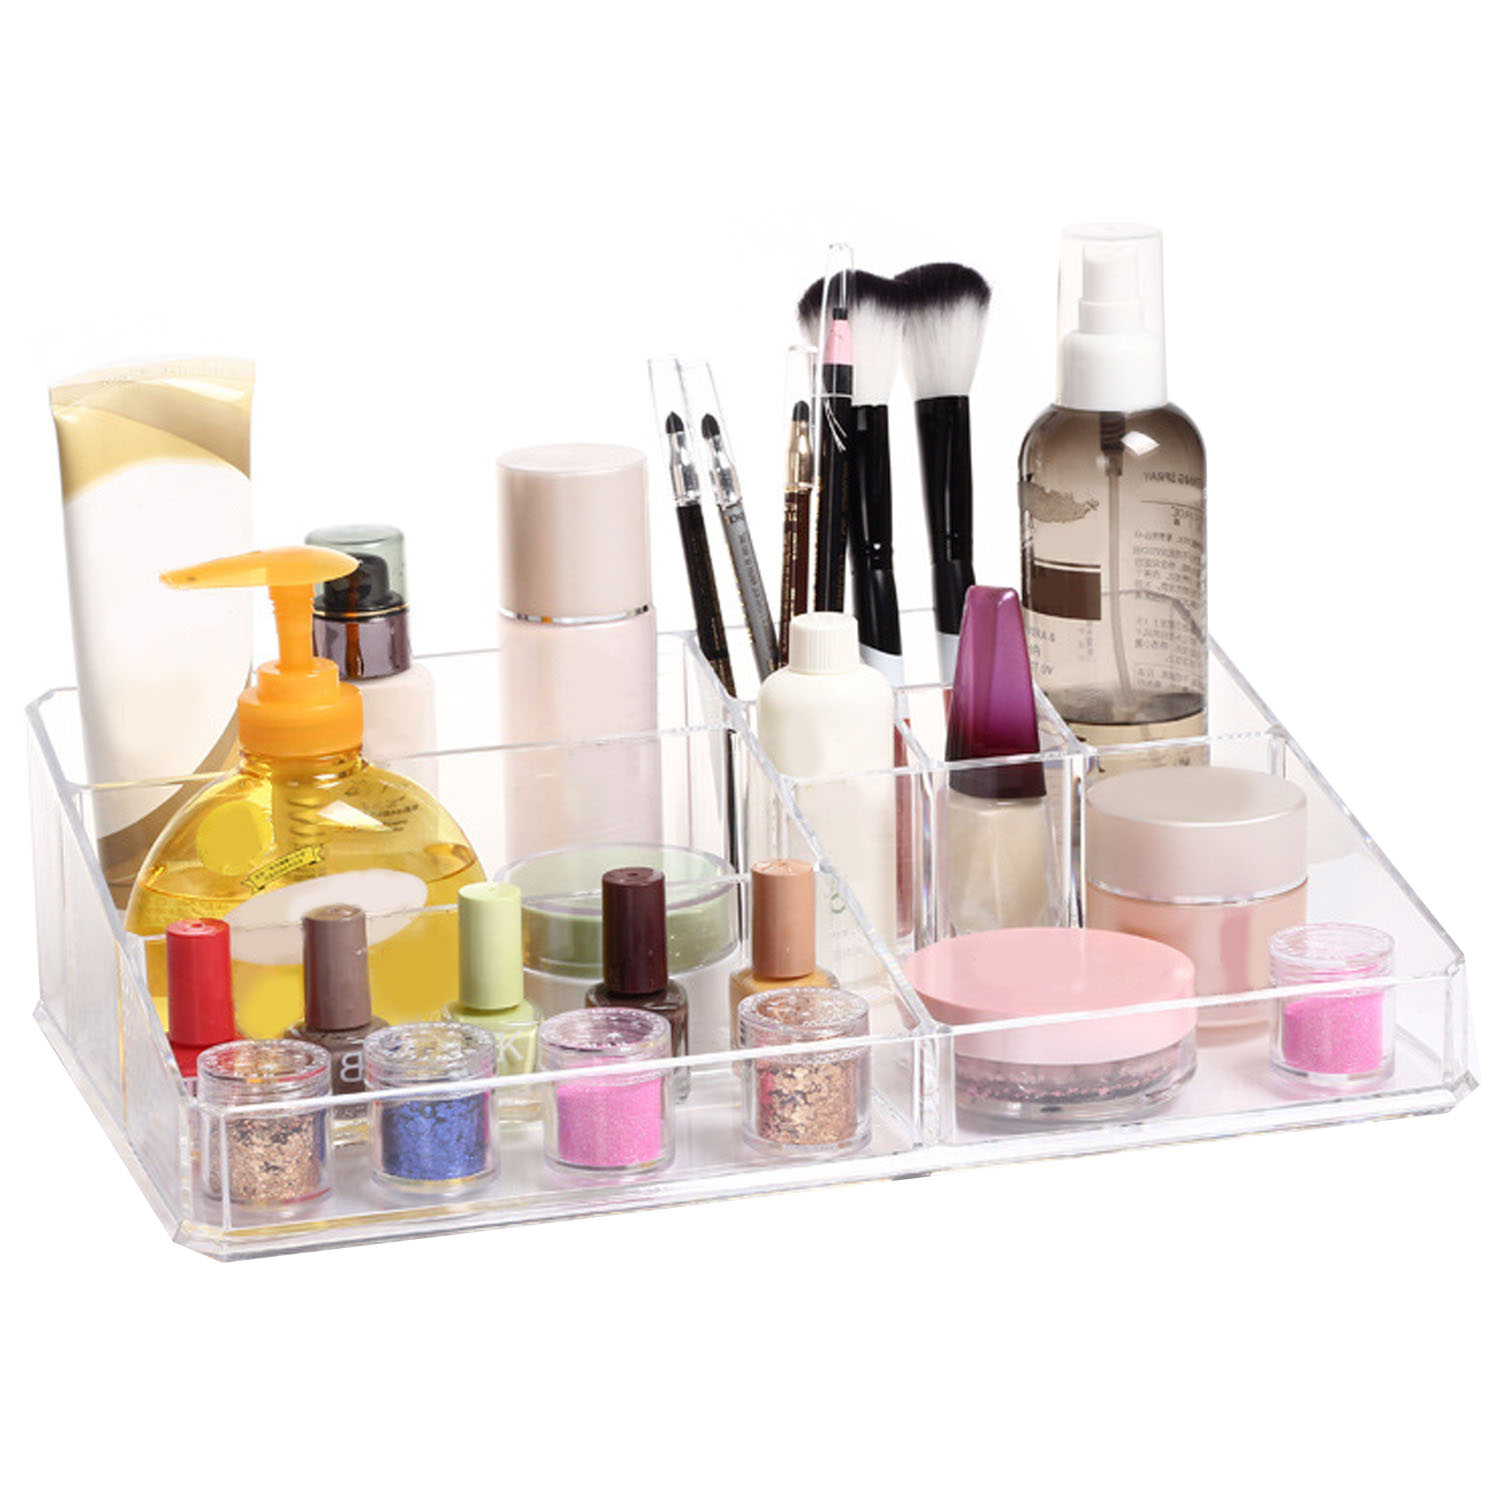 Behogar Clear Cosmetic Makeup Storage Organizer Box Lipstick Holder Stand Make up Brush Eyeshadow Nail Polish Case Container